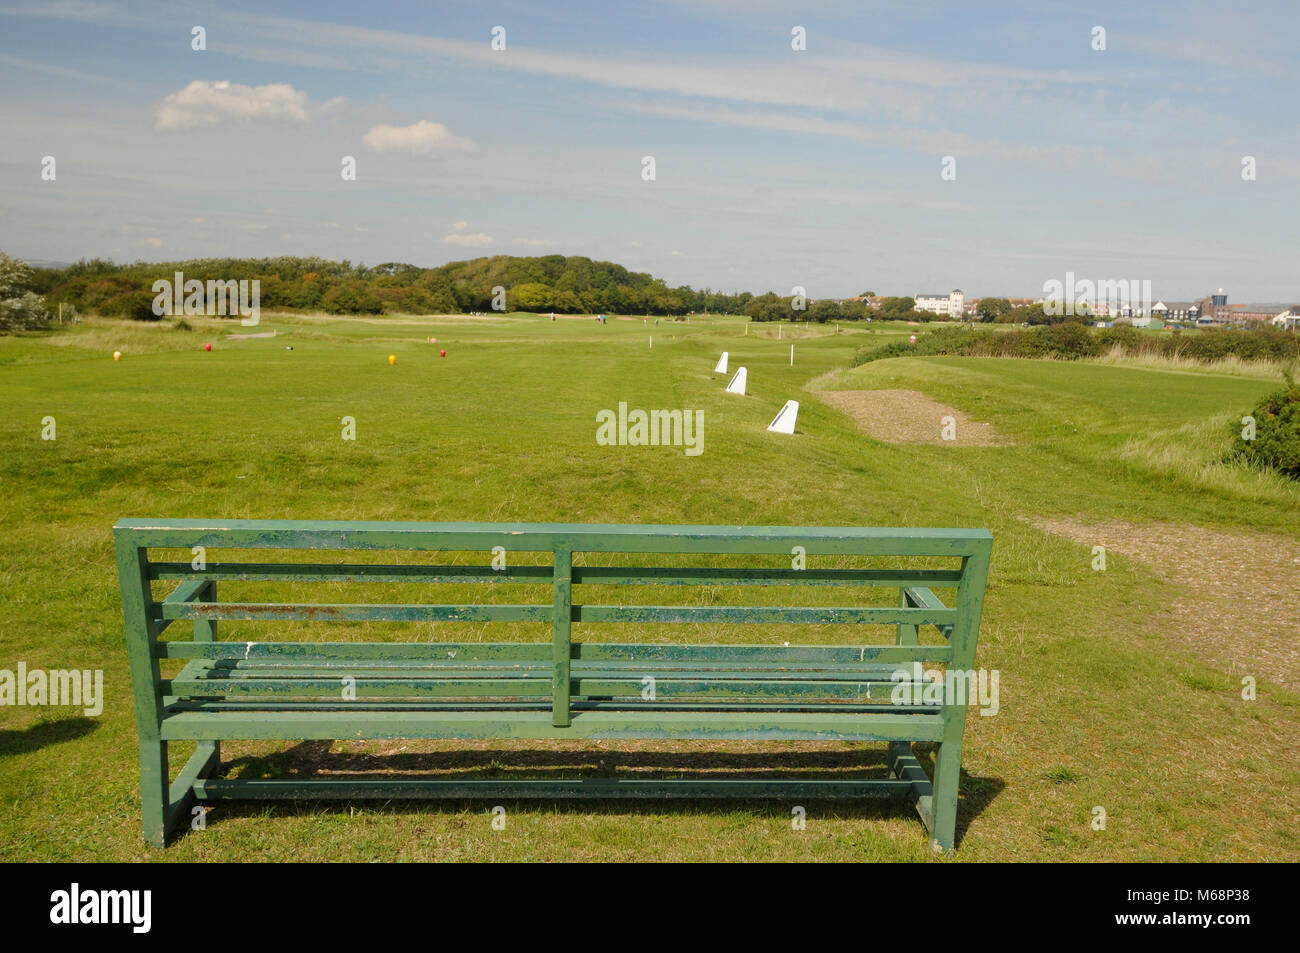 View over bench to 14th Tee and fairway, Littlehampton Golf course, Littlehampton, Sussex, England Stock Photo